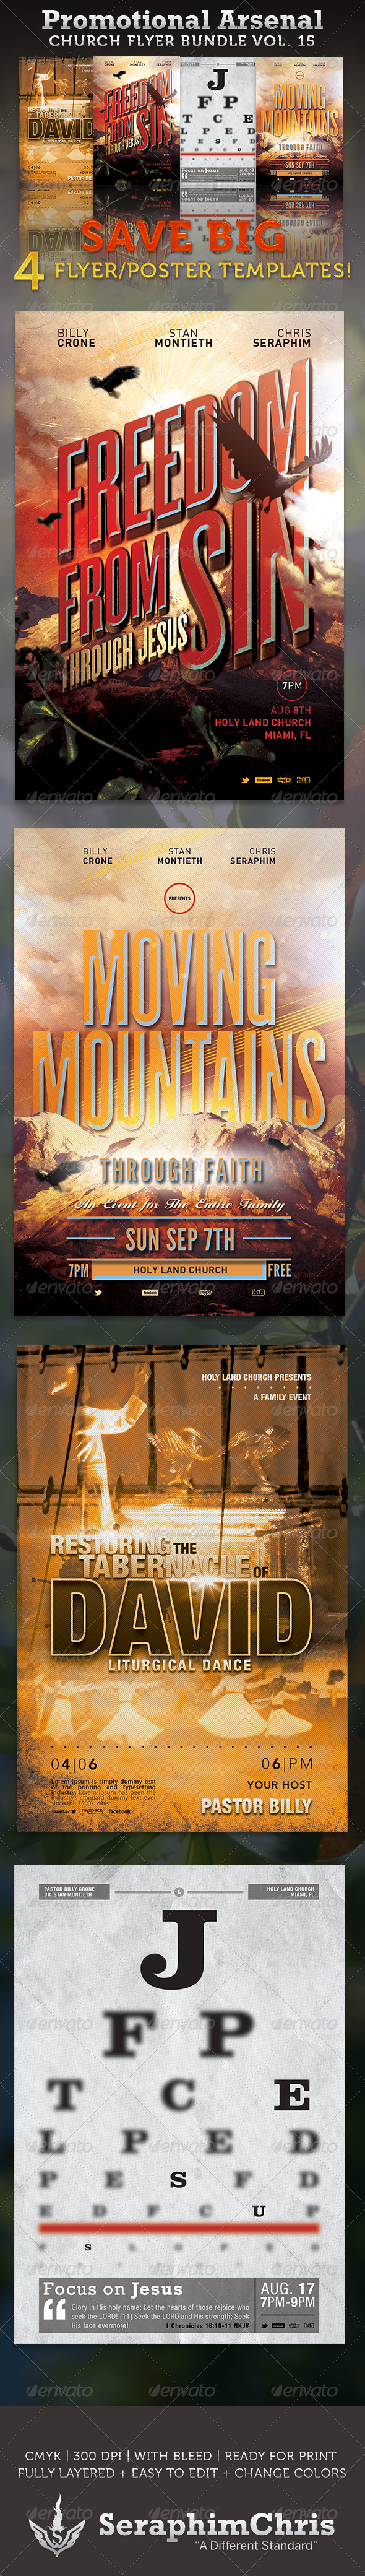 GraphicRiver Promotional Arsenal Church Flyer Bundle 15 3554399